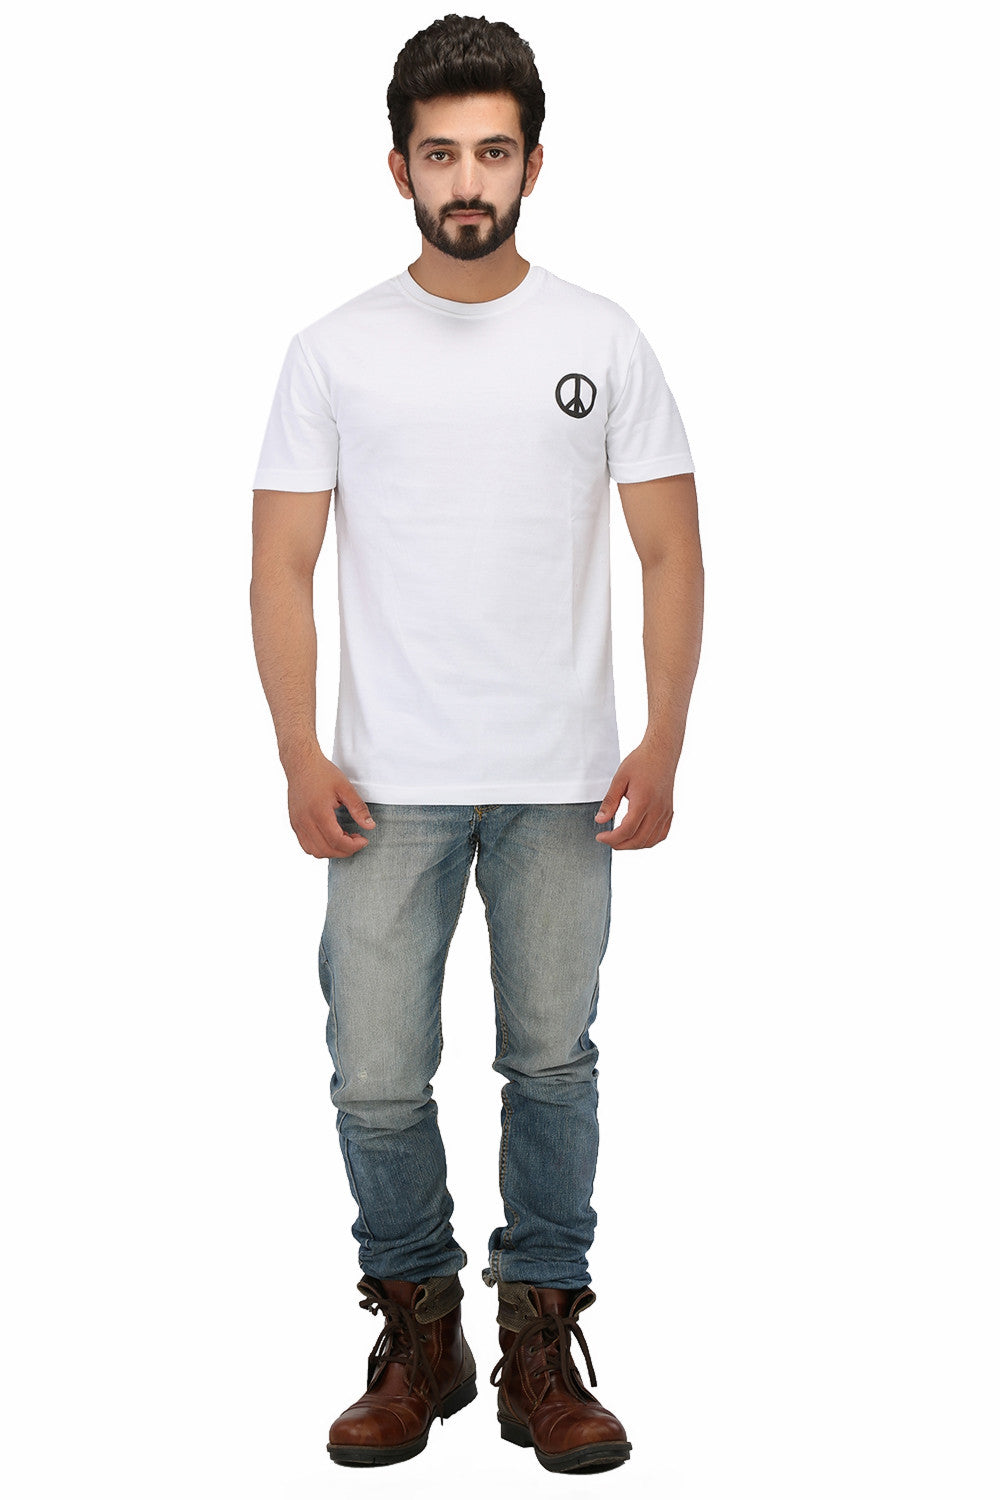 Hand-painted Peace White T-shirt - Rang Rage  - 4